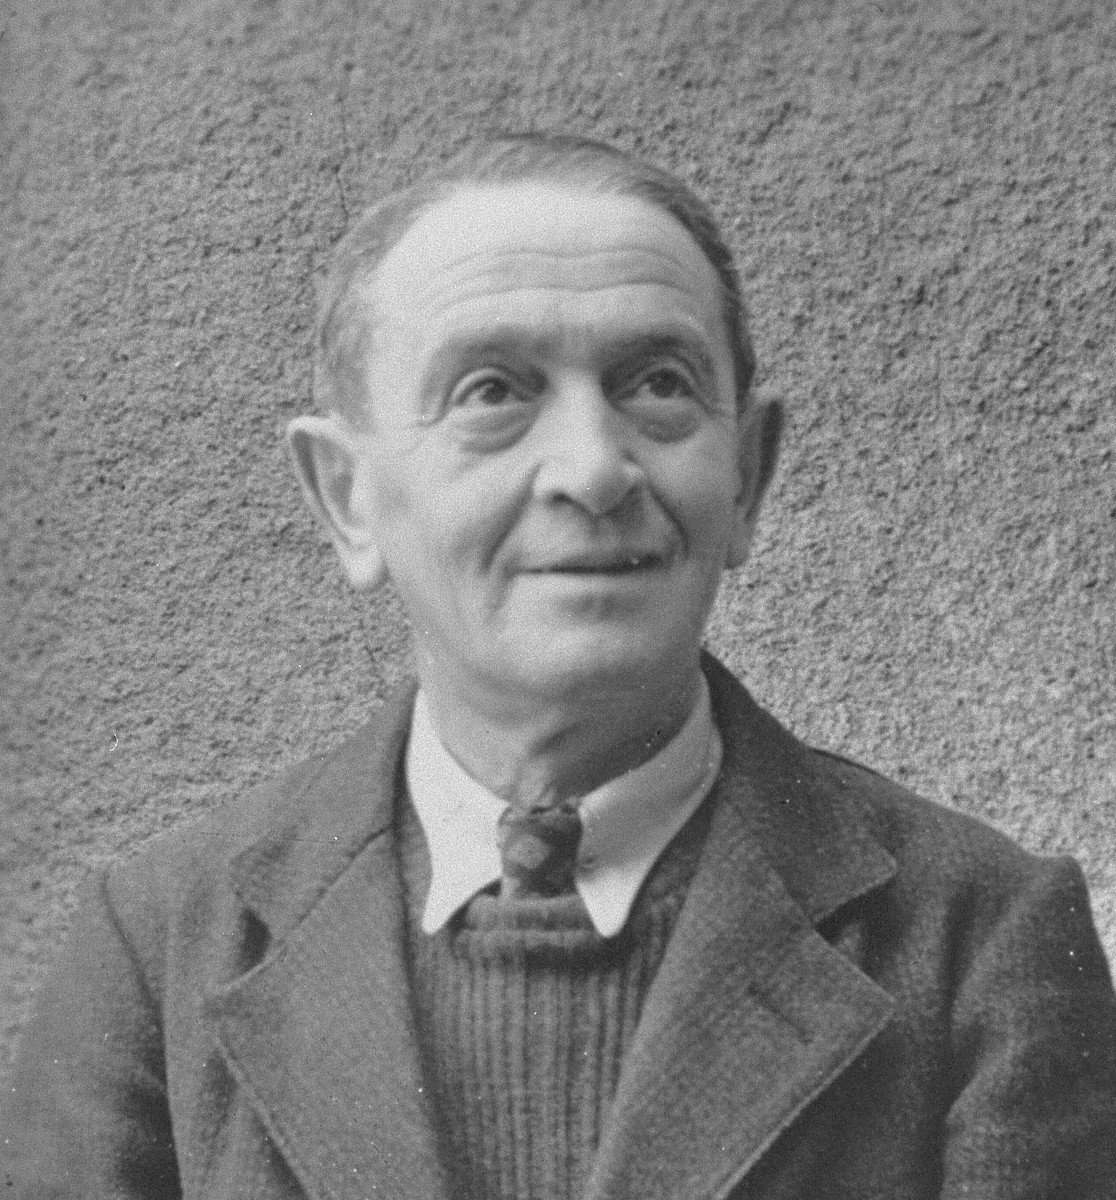 Portrait of the Austrian/German Jew, Ernst Feigl, that was pasted in his son Peter's wartime journal.